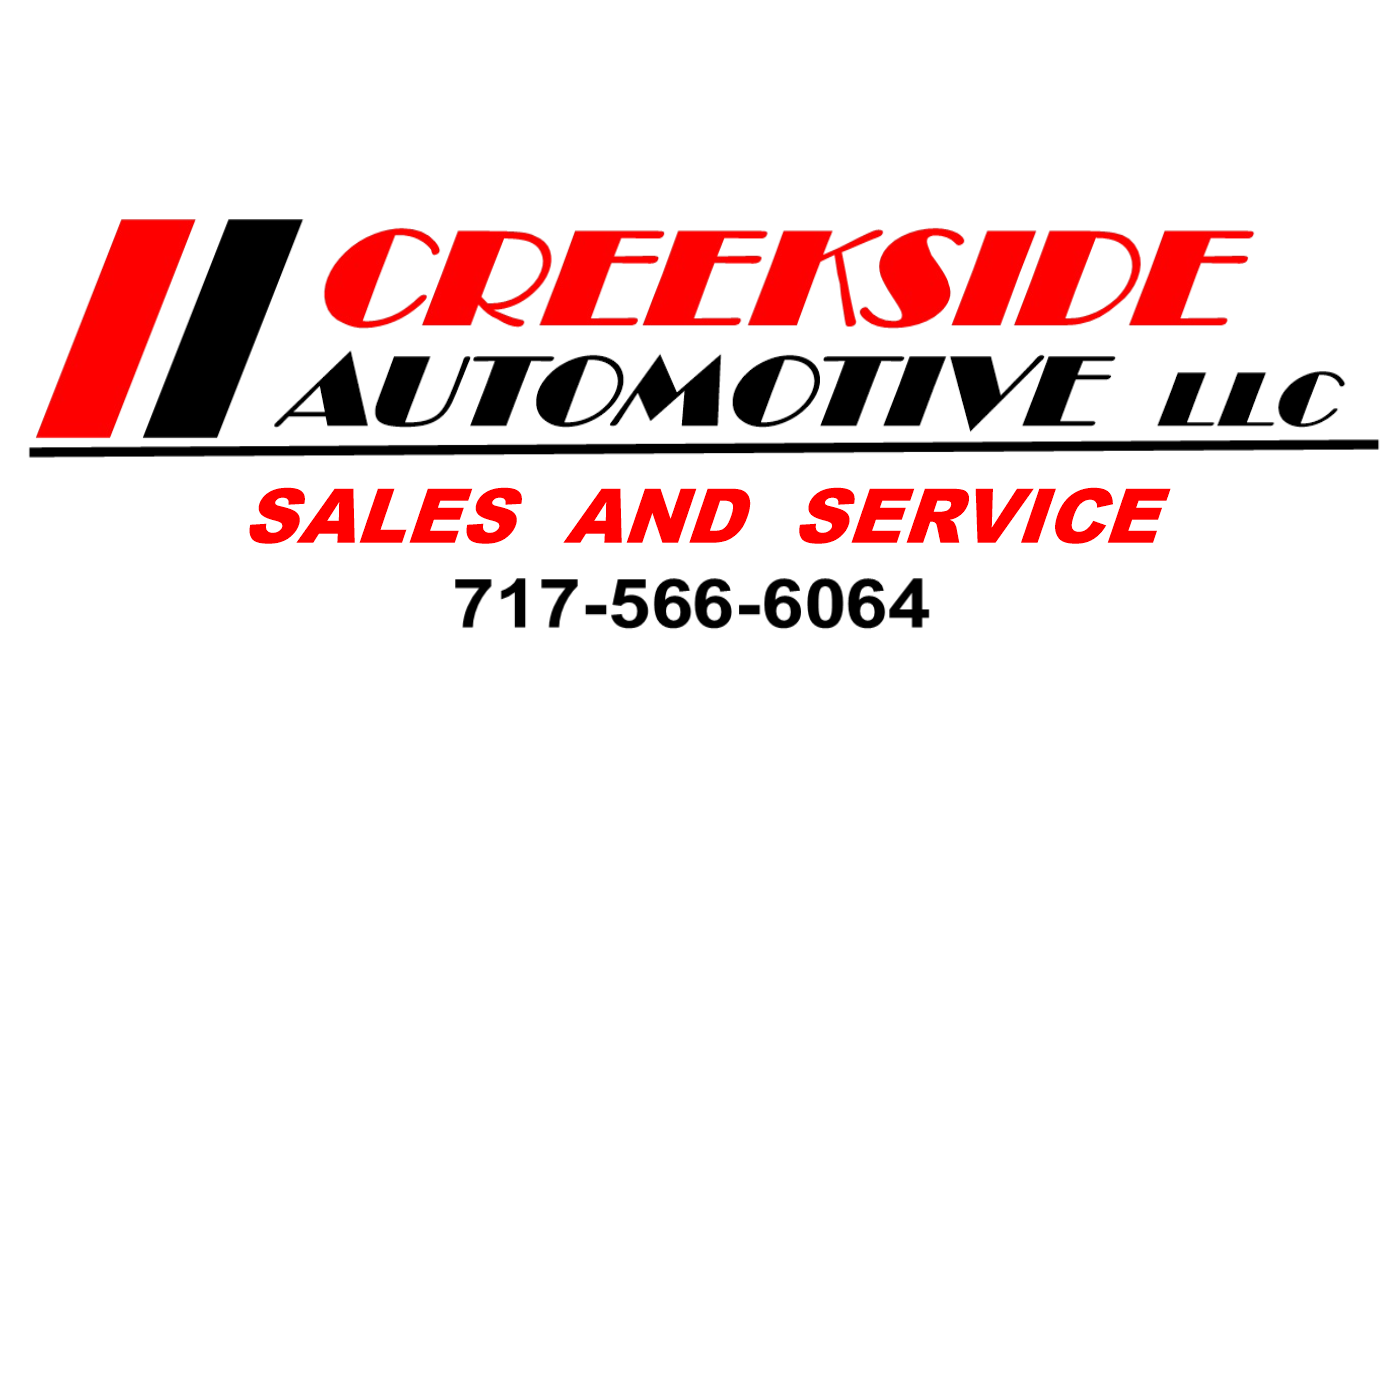 Creekside automotive llc in hummelstown pa whitepages for Sun motor cars mechanicsburg pa